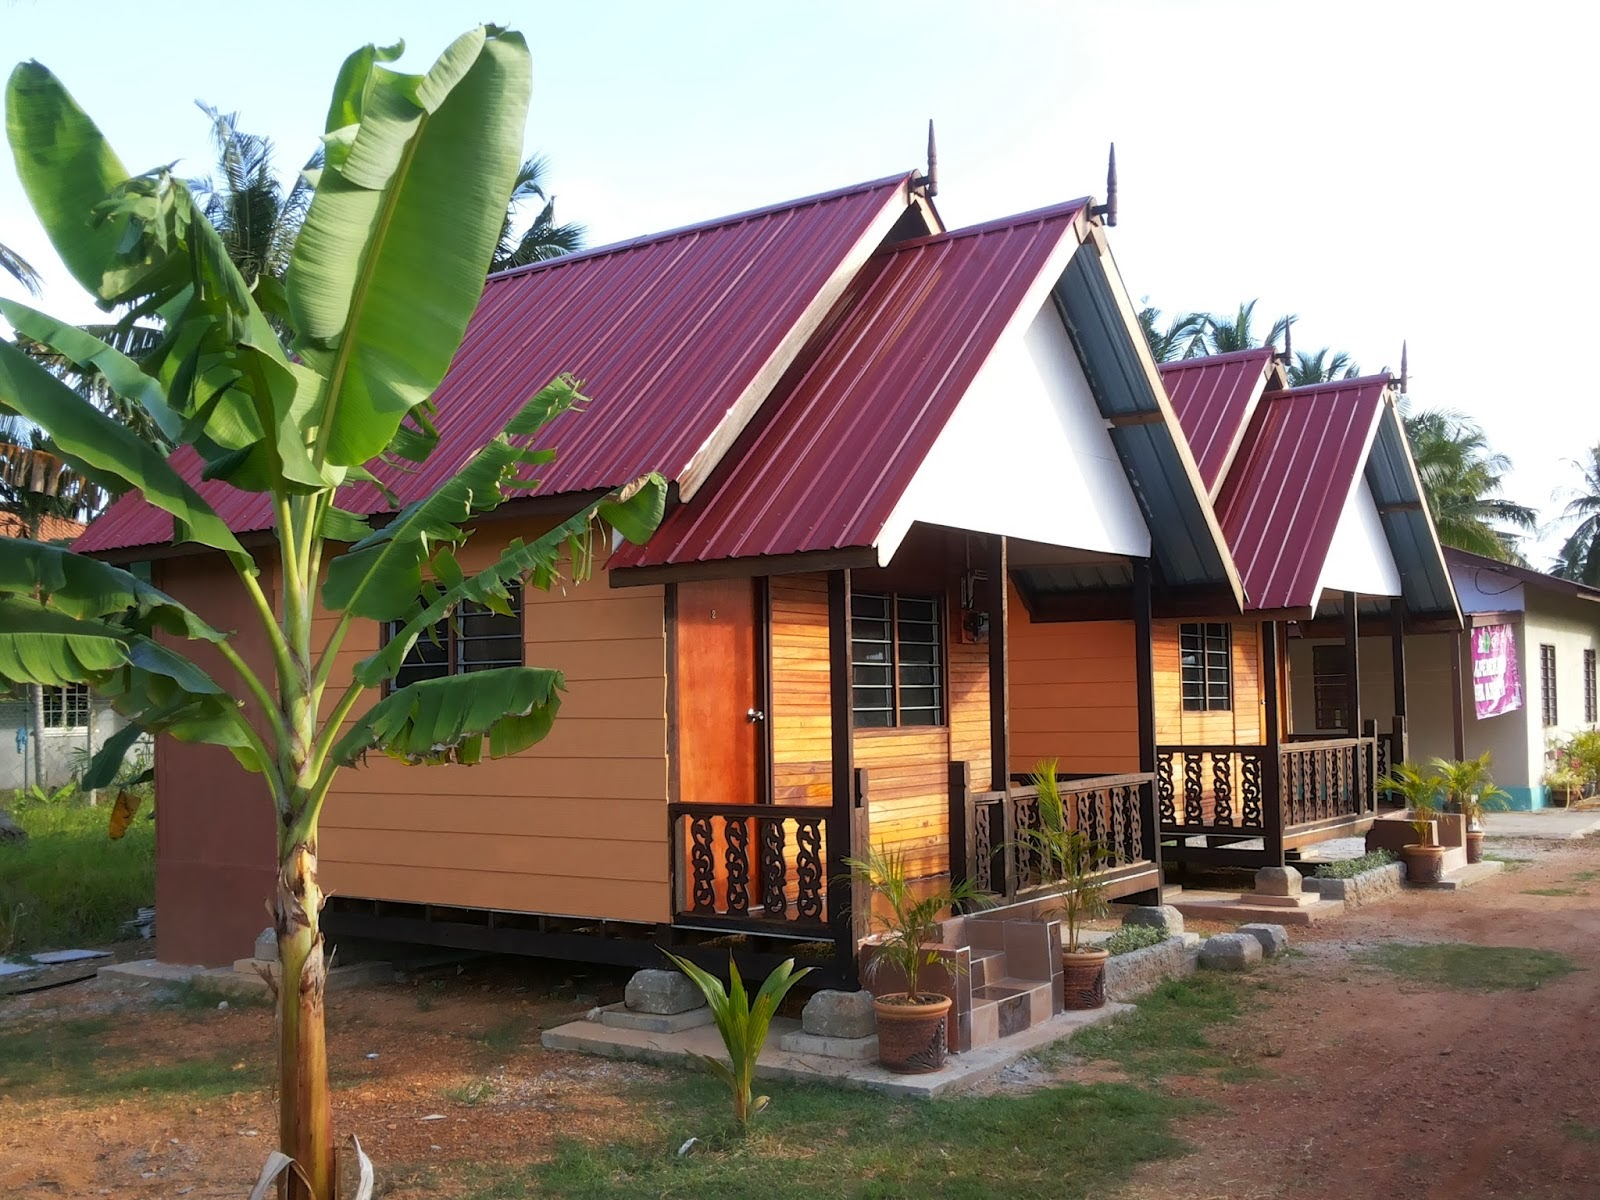 homestay Welcome to goan homestays goan home stays provides luxurious 1 and 2 bedroom apartments at the prime holiday destinations of candolim and calangute, north goa.